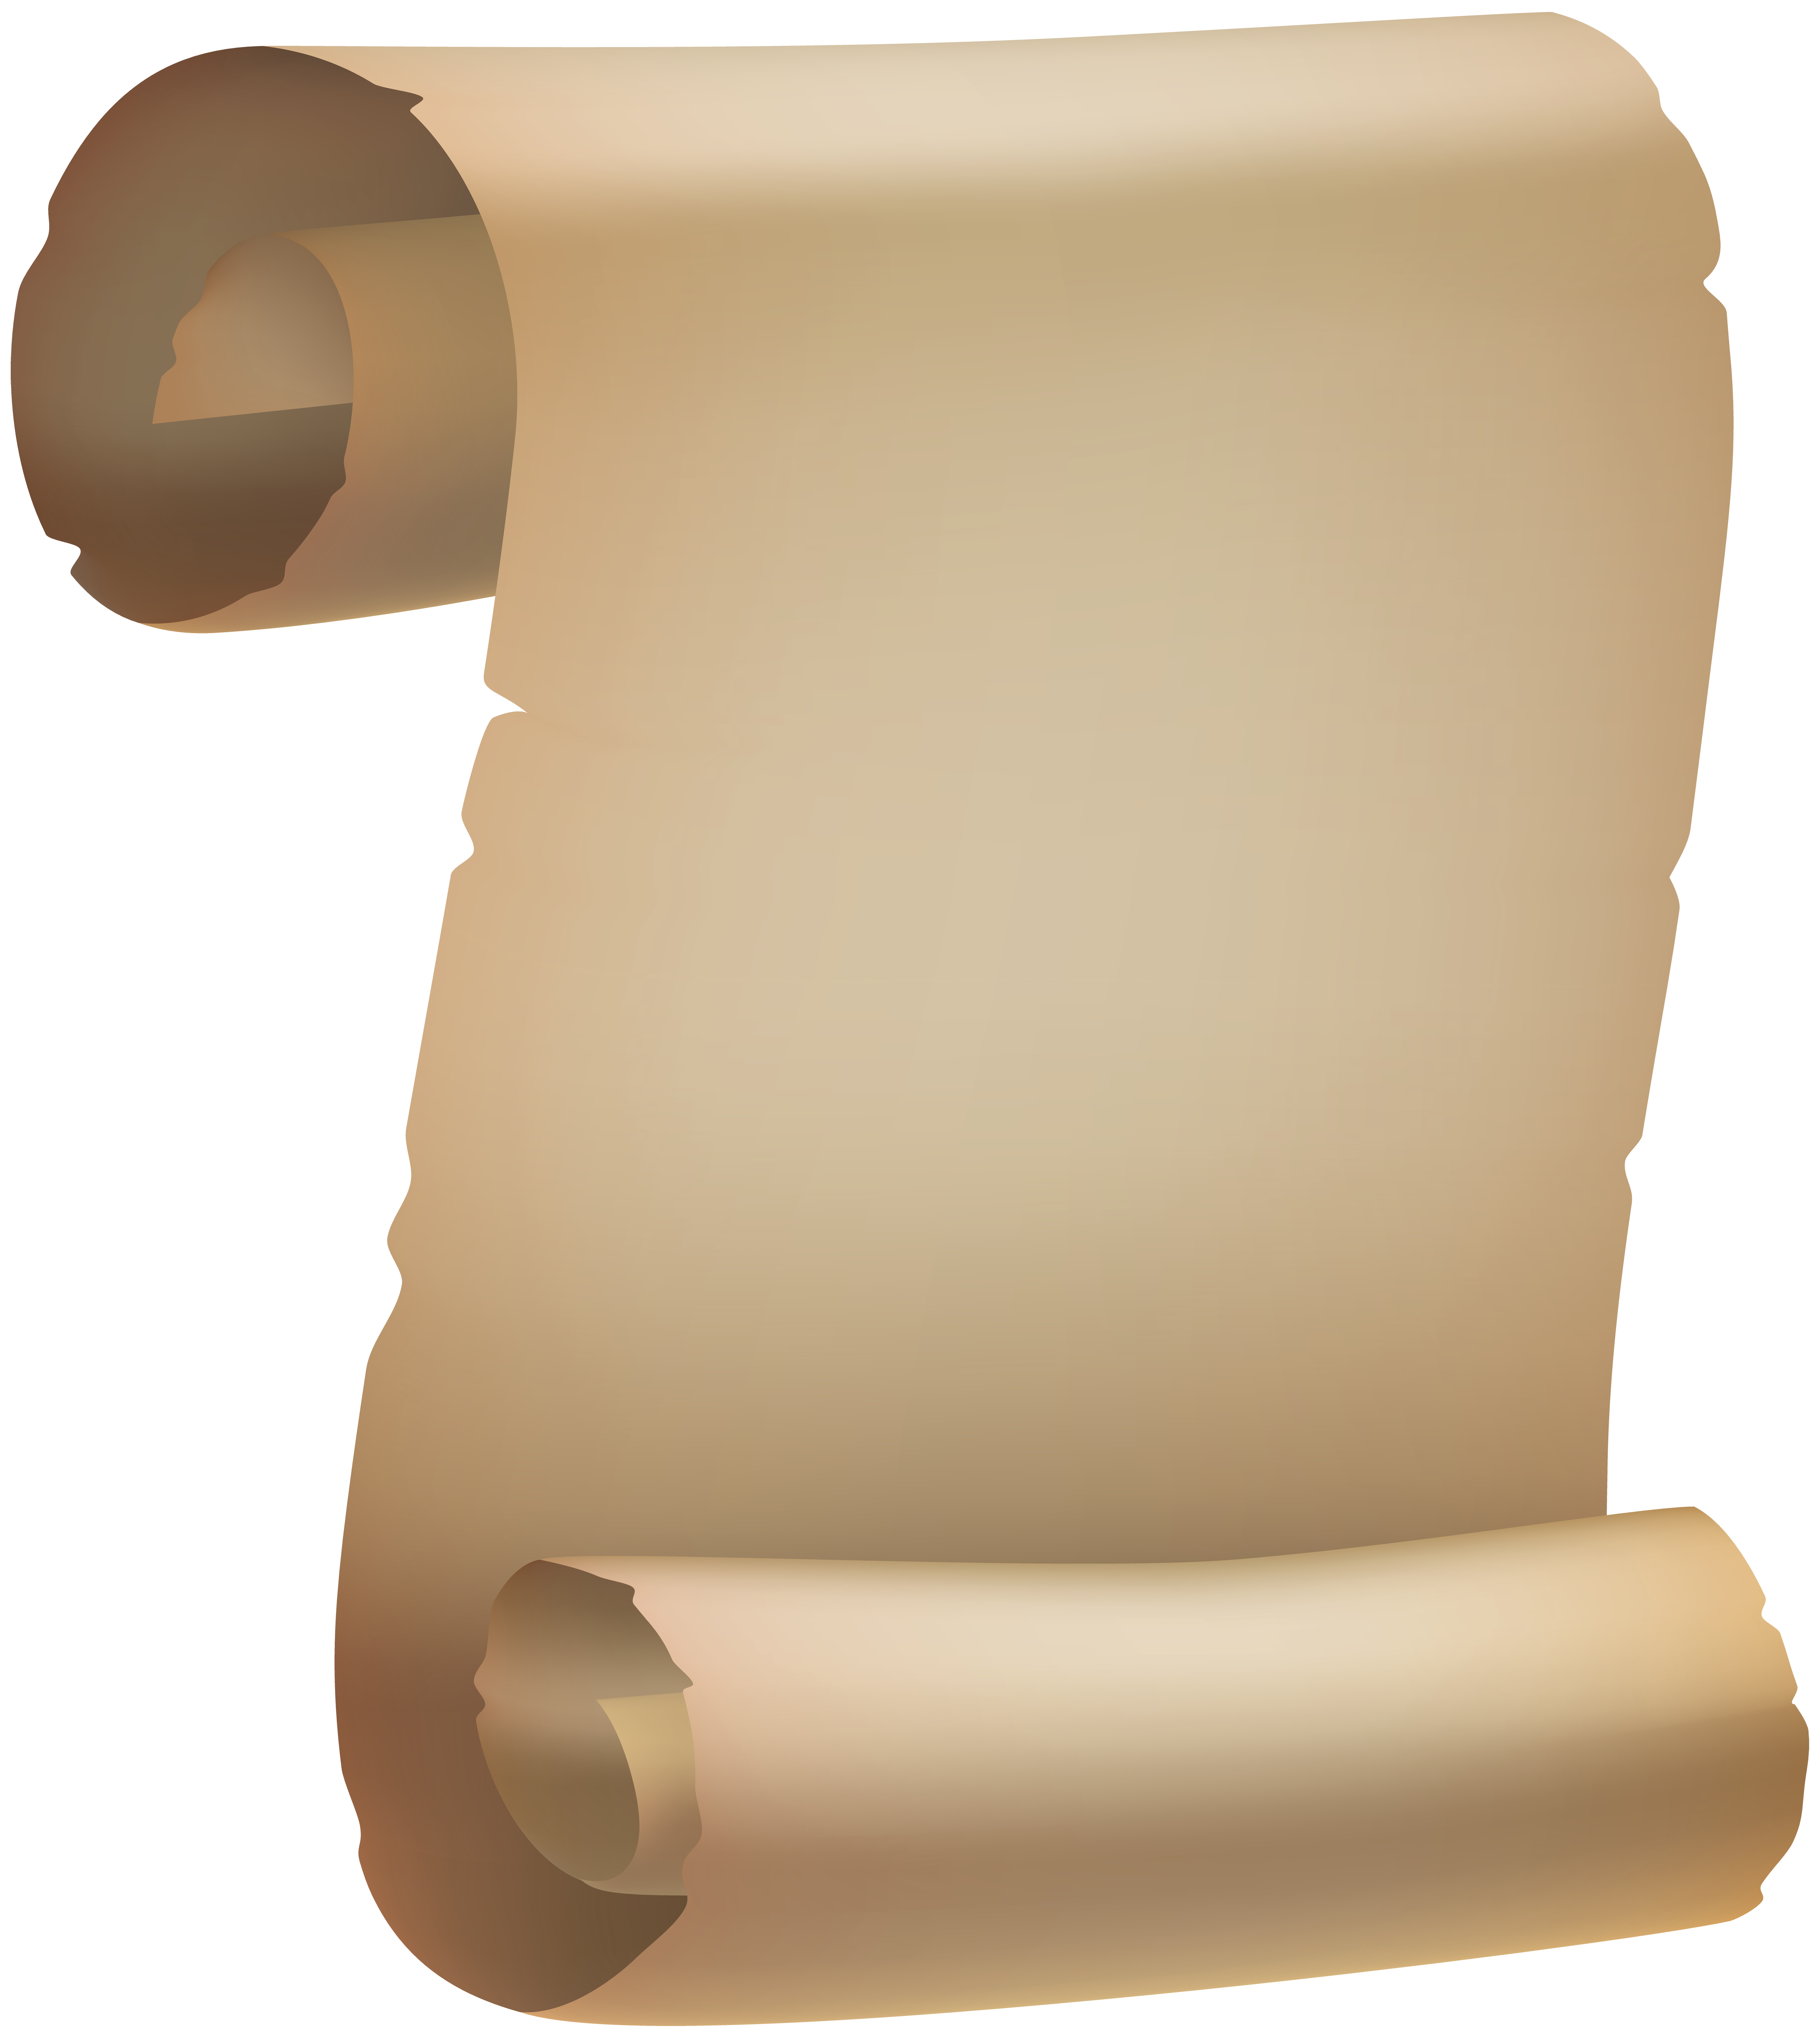 Old scroll png. Paper clipart image gallery